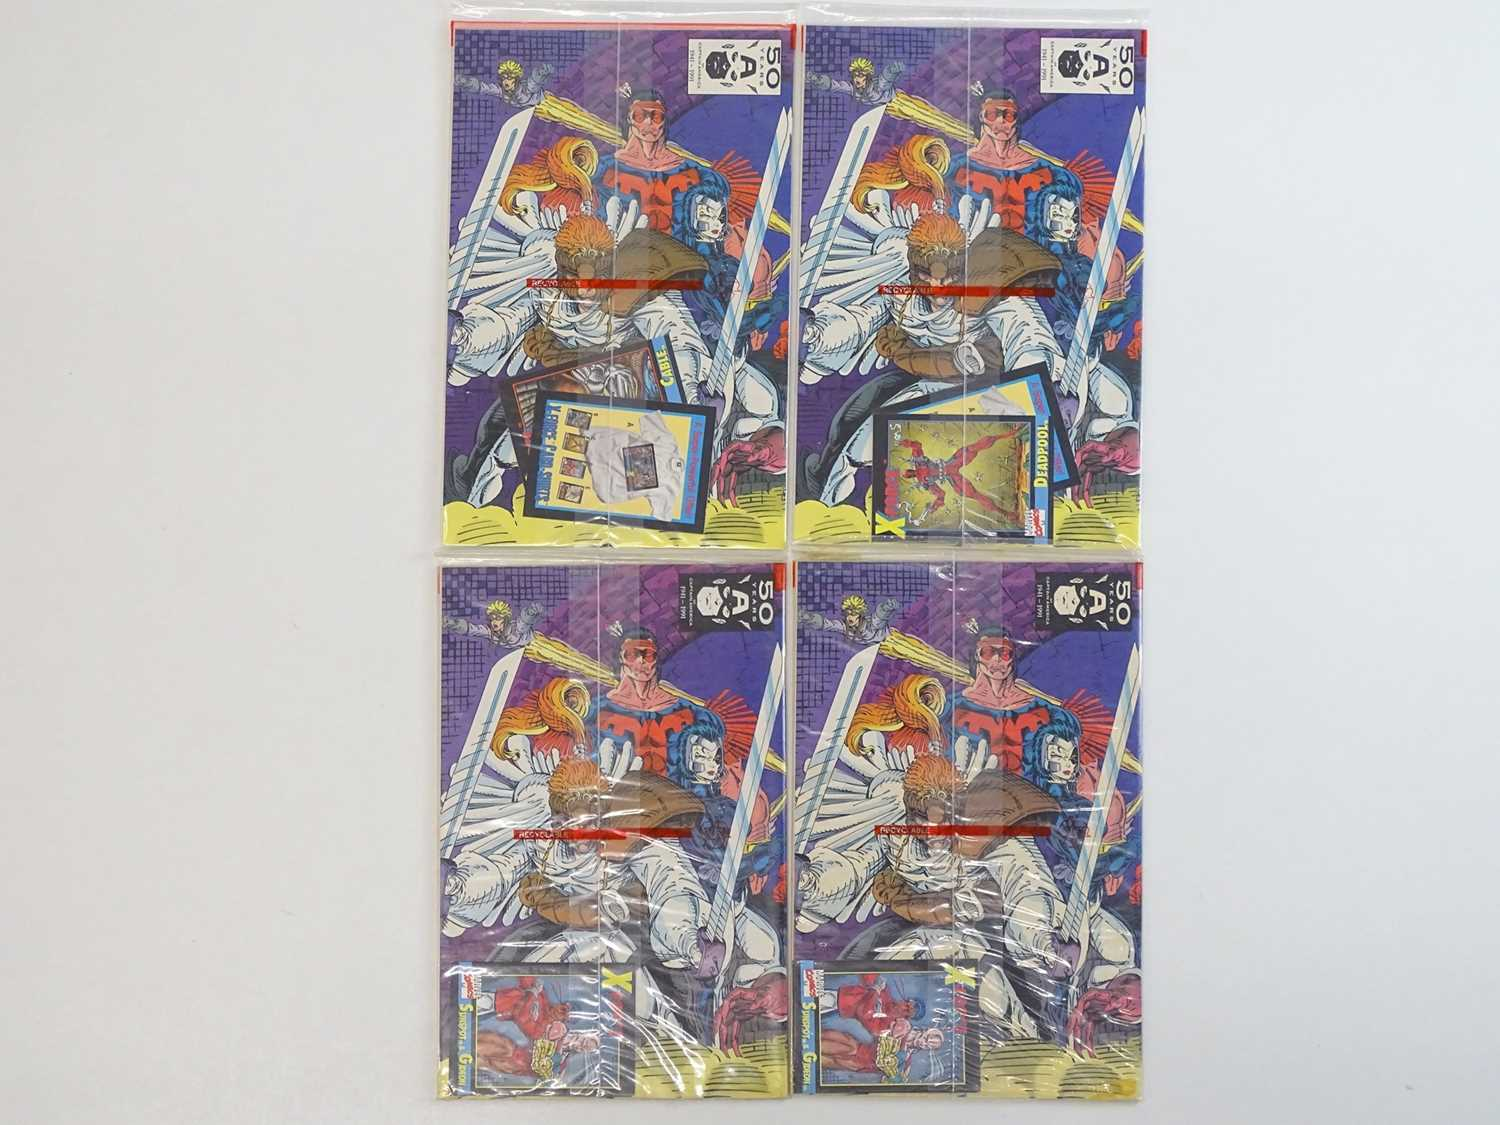 X-FORCE #1 - (4 in Lot) - (1991 - MARVEL) - All issues sealed in unopened poly bags with Trading - Image 2 of 2